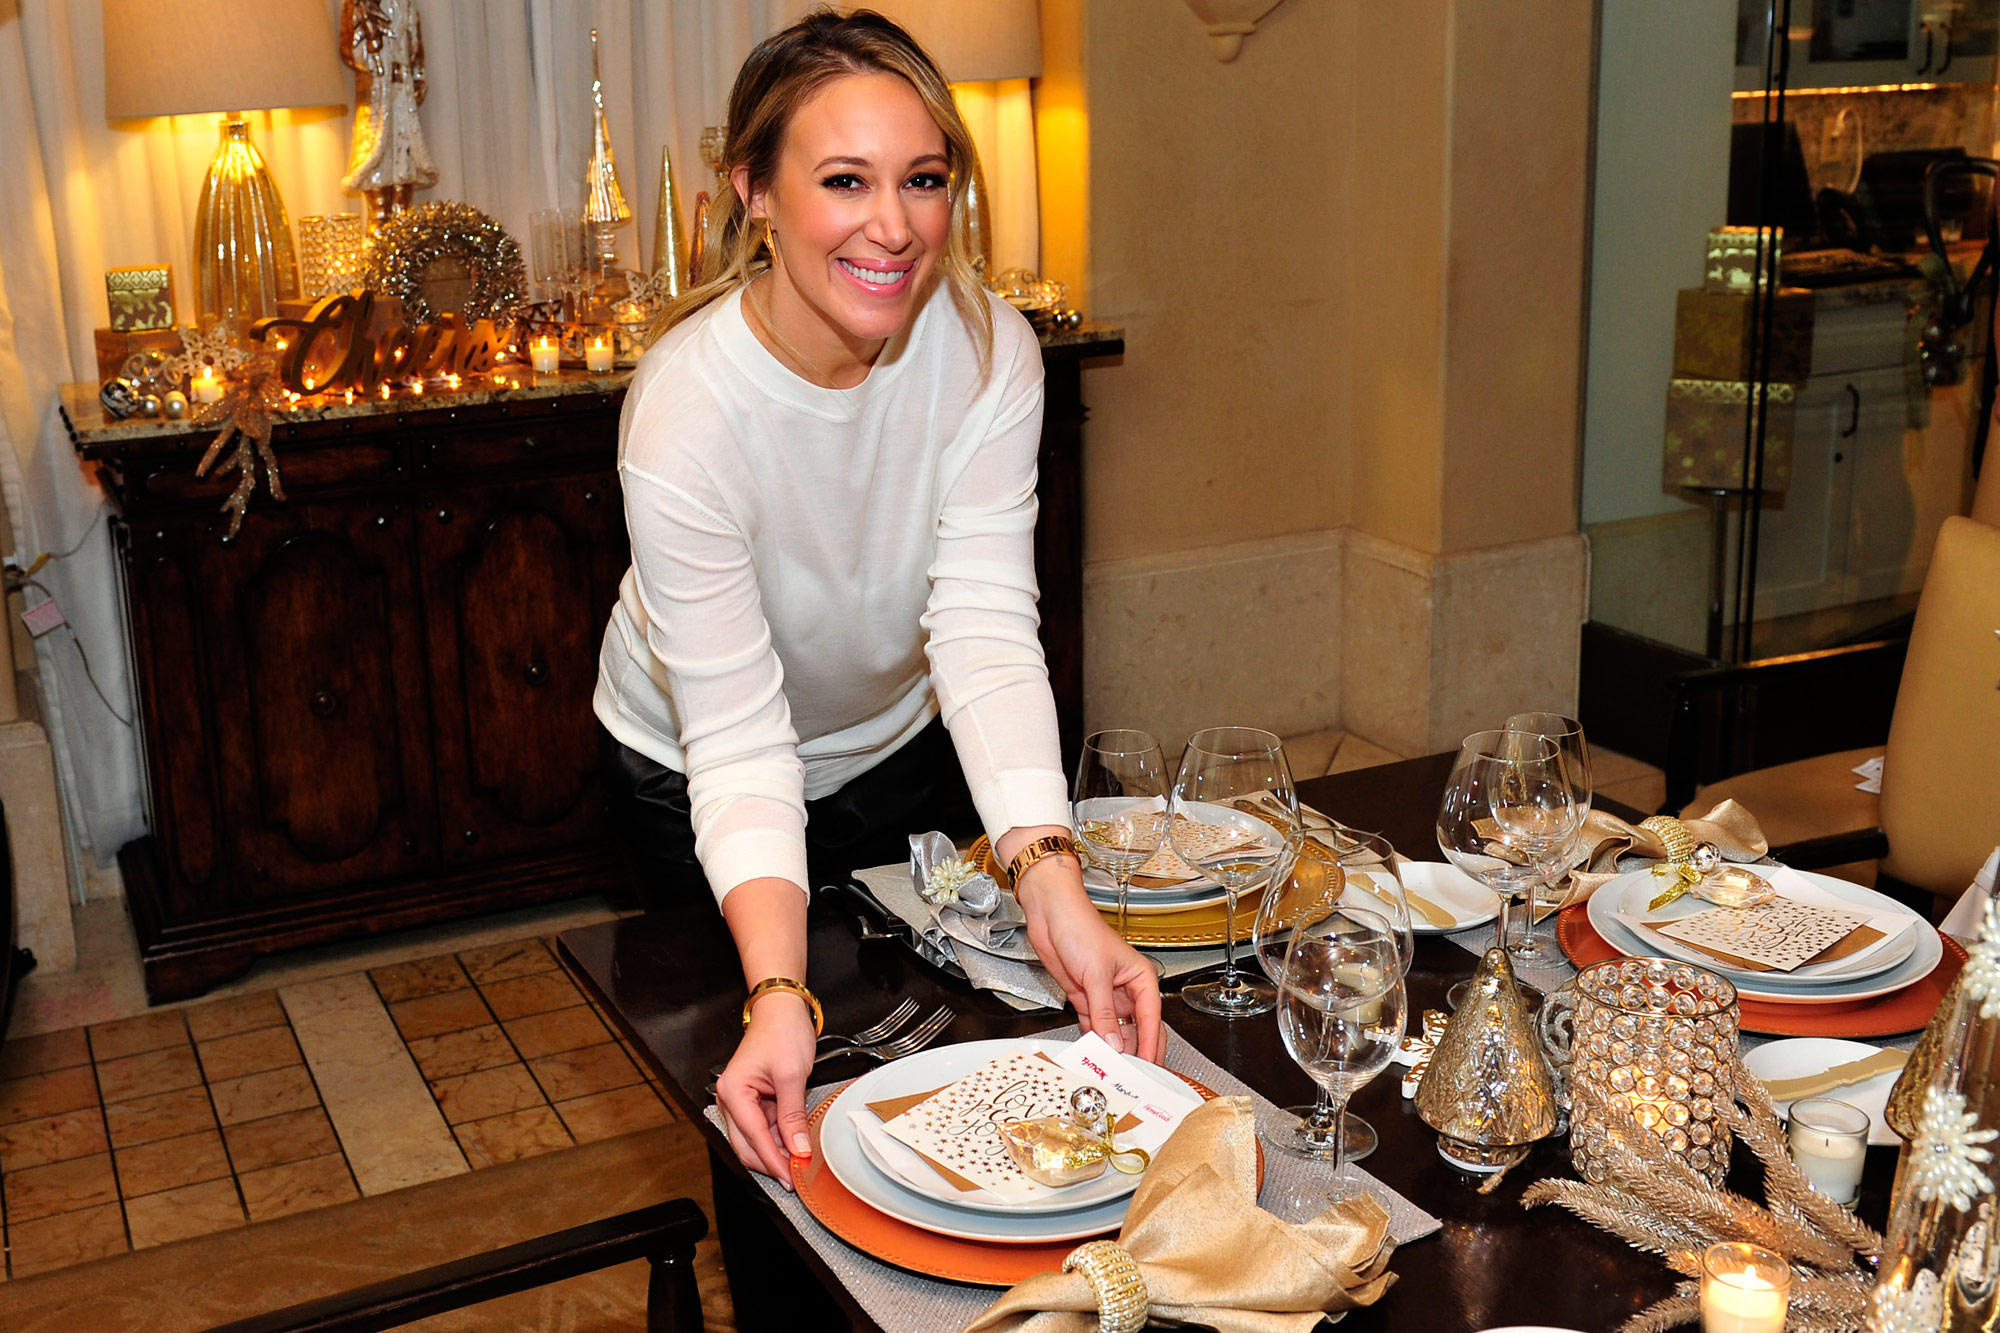 Haylie Duff On Being Tasked With Cooking Her Delicious Turkey Recipe for Thanksgiving (Again)